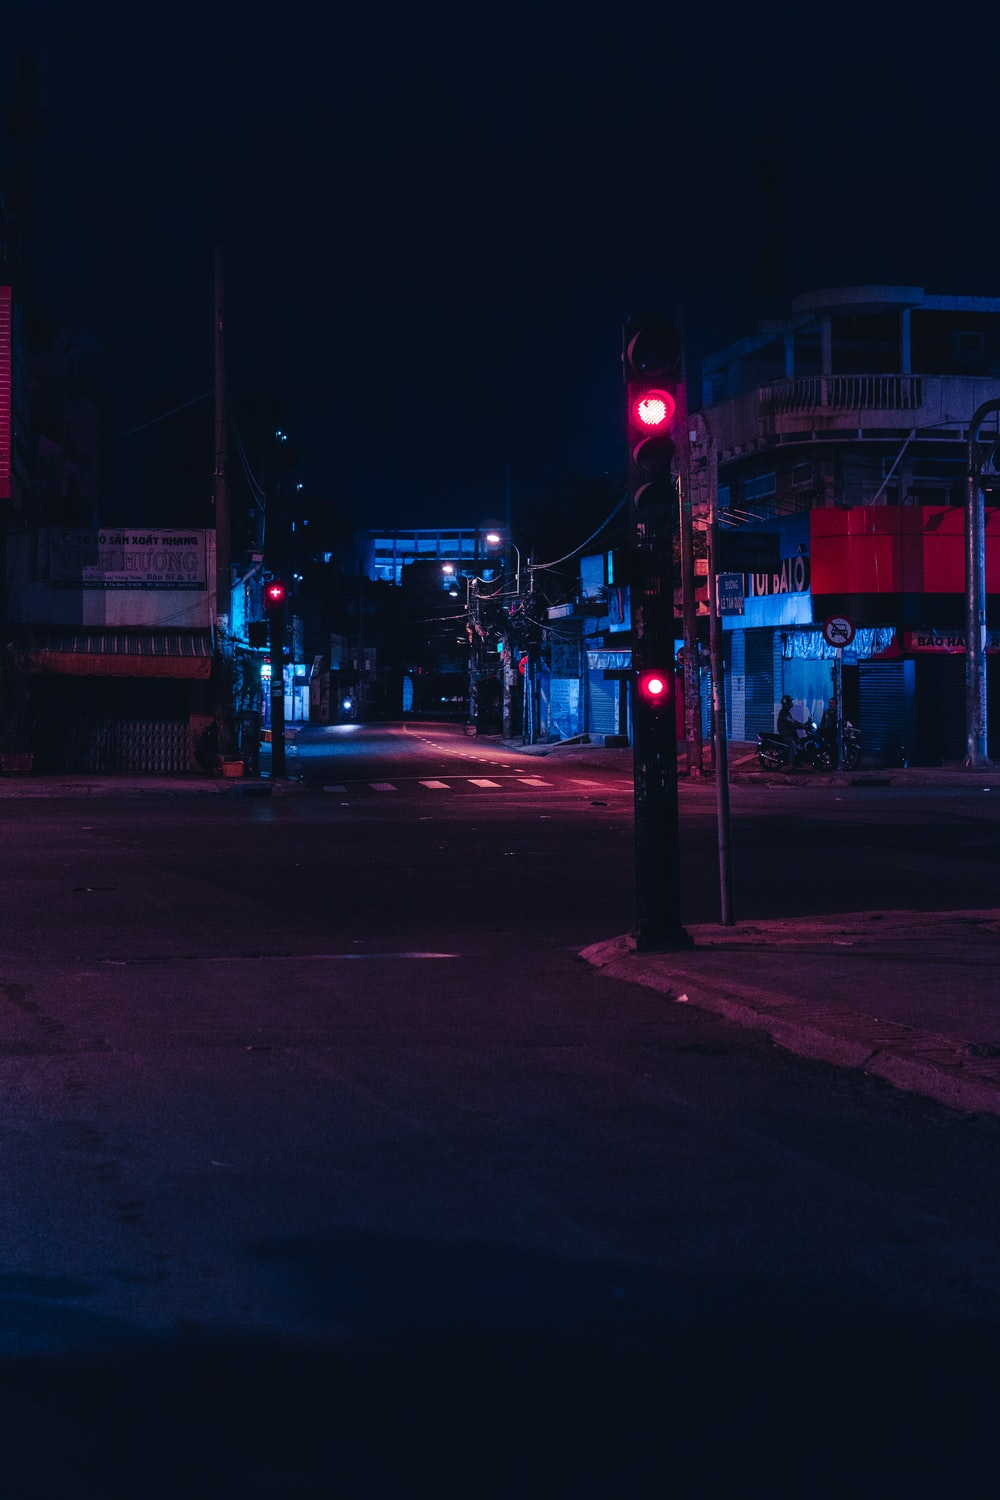 red and white street light during night time